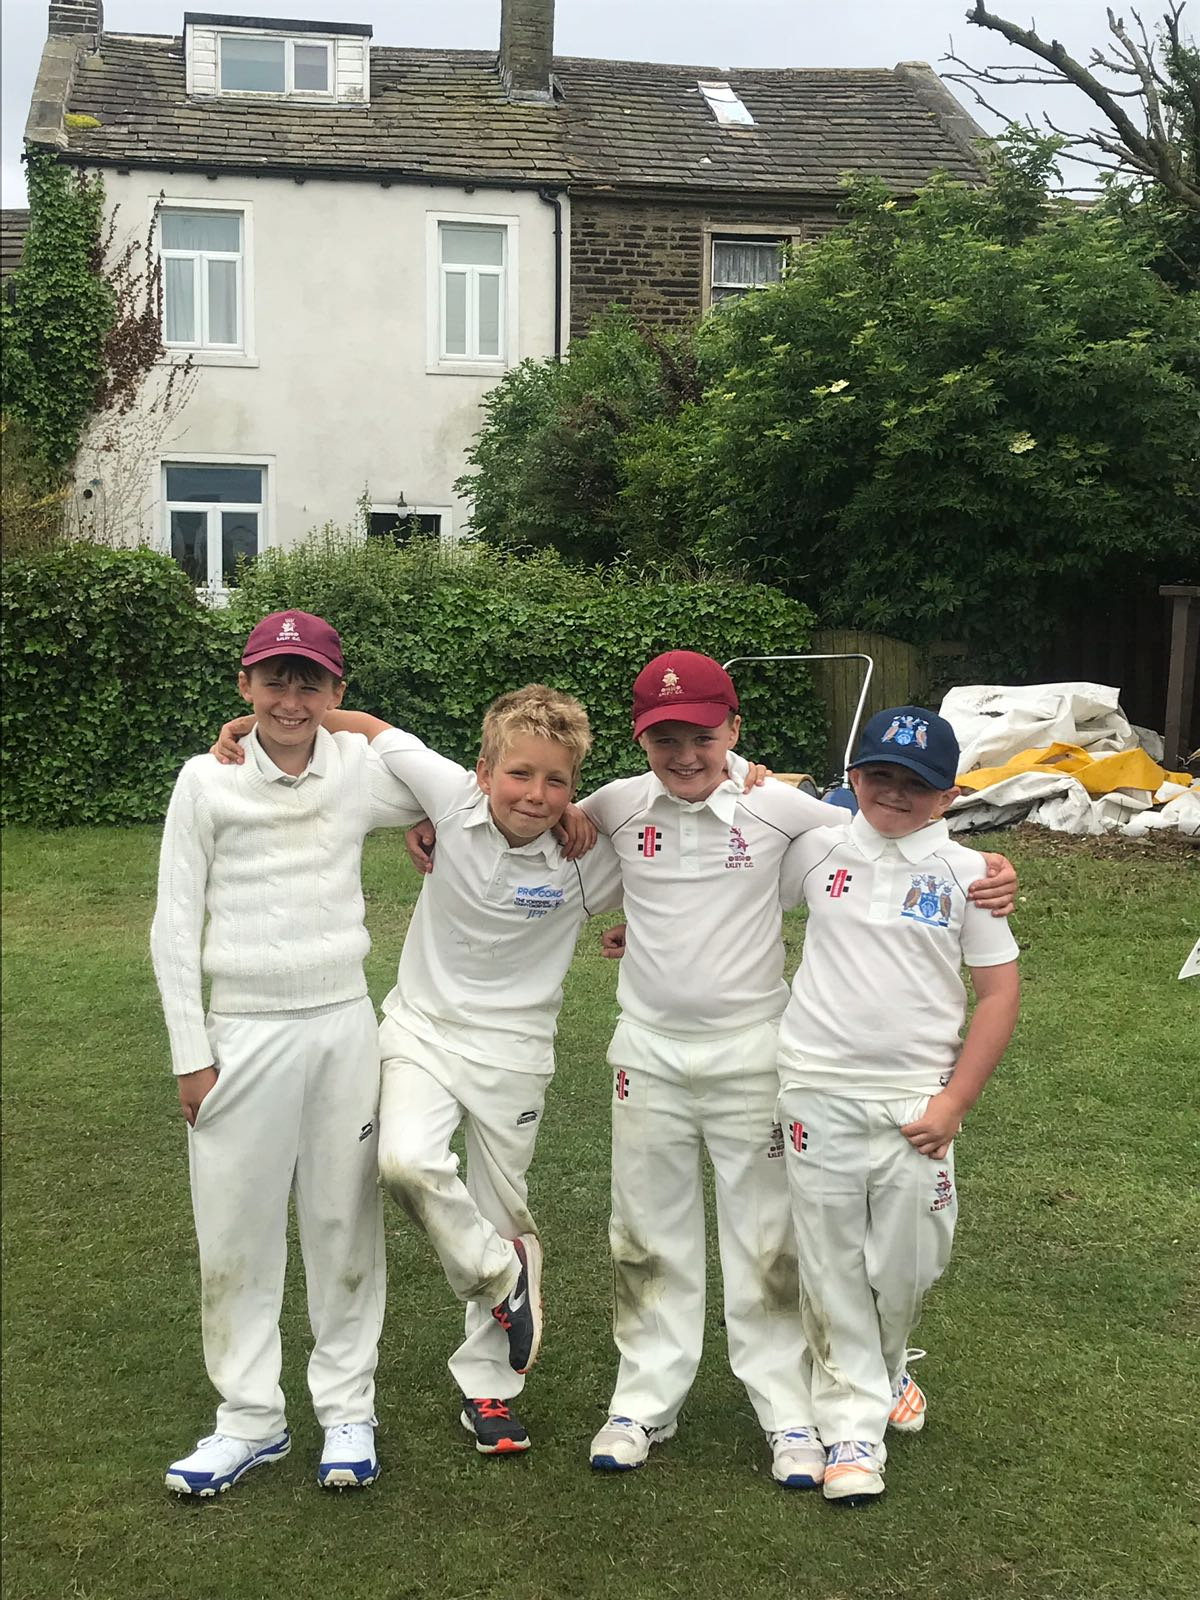 Left to right - Zac Ayre, Jack Winterbottom, Daniel Quaife and Alex Ross.